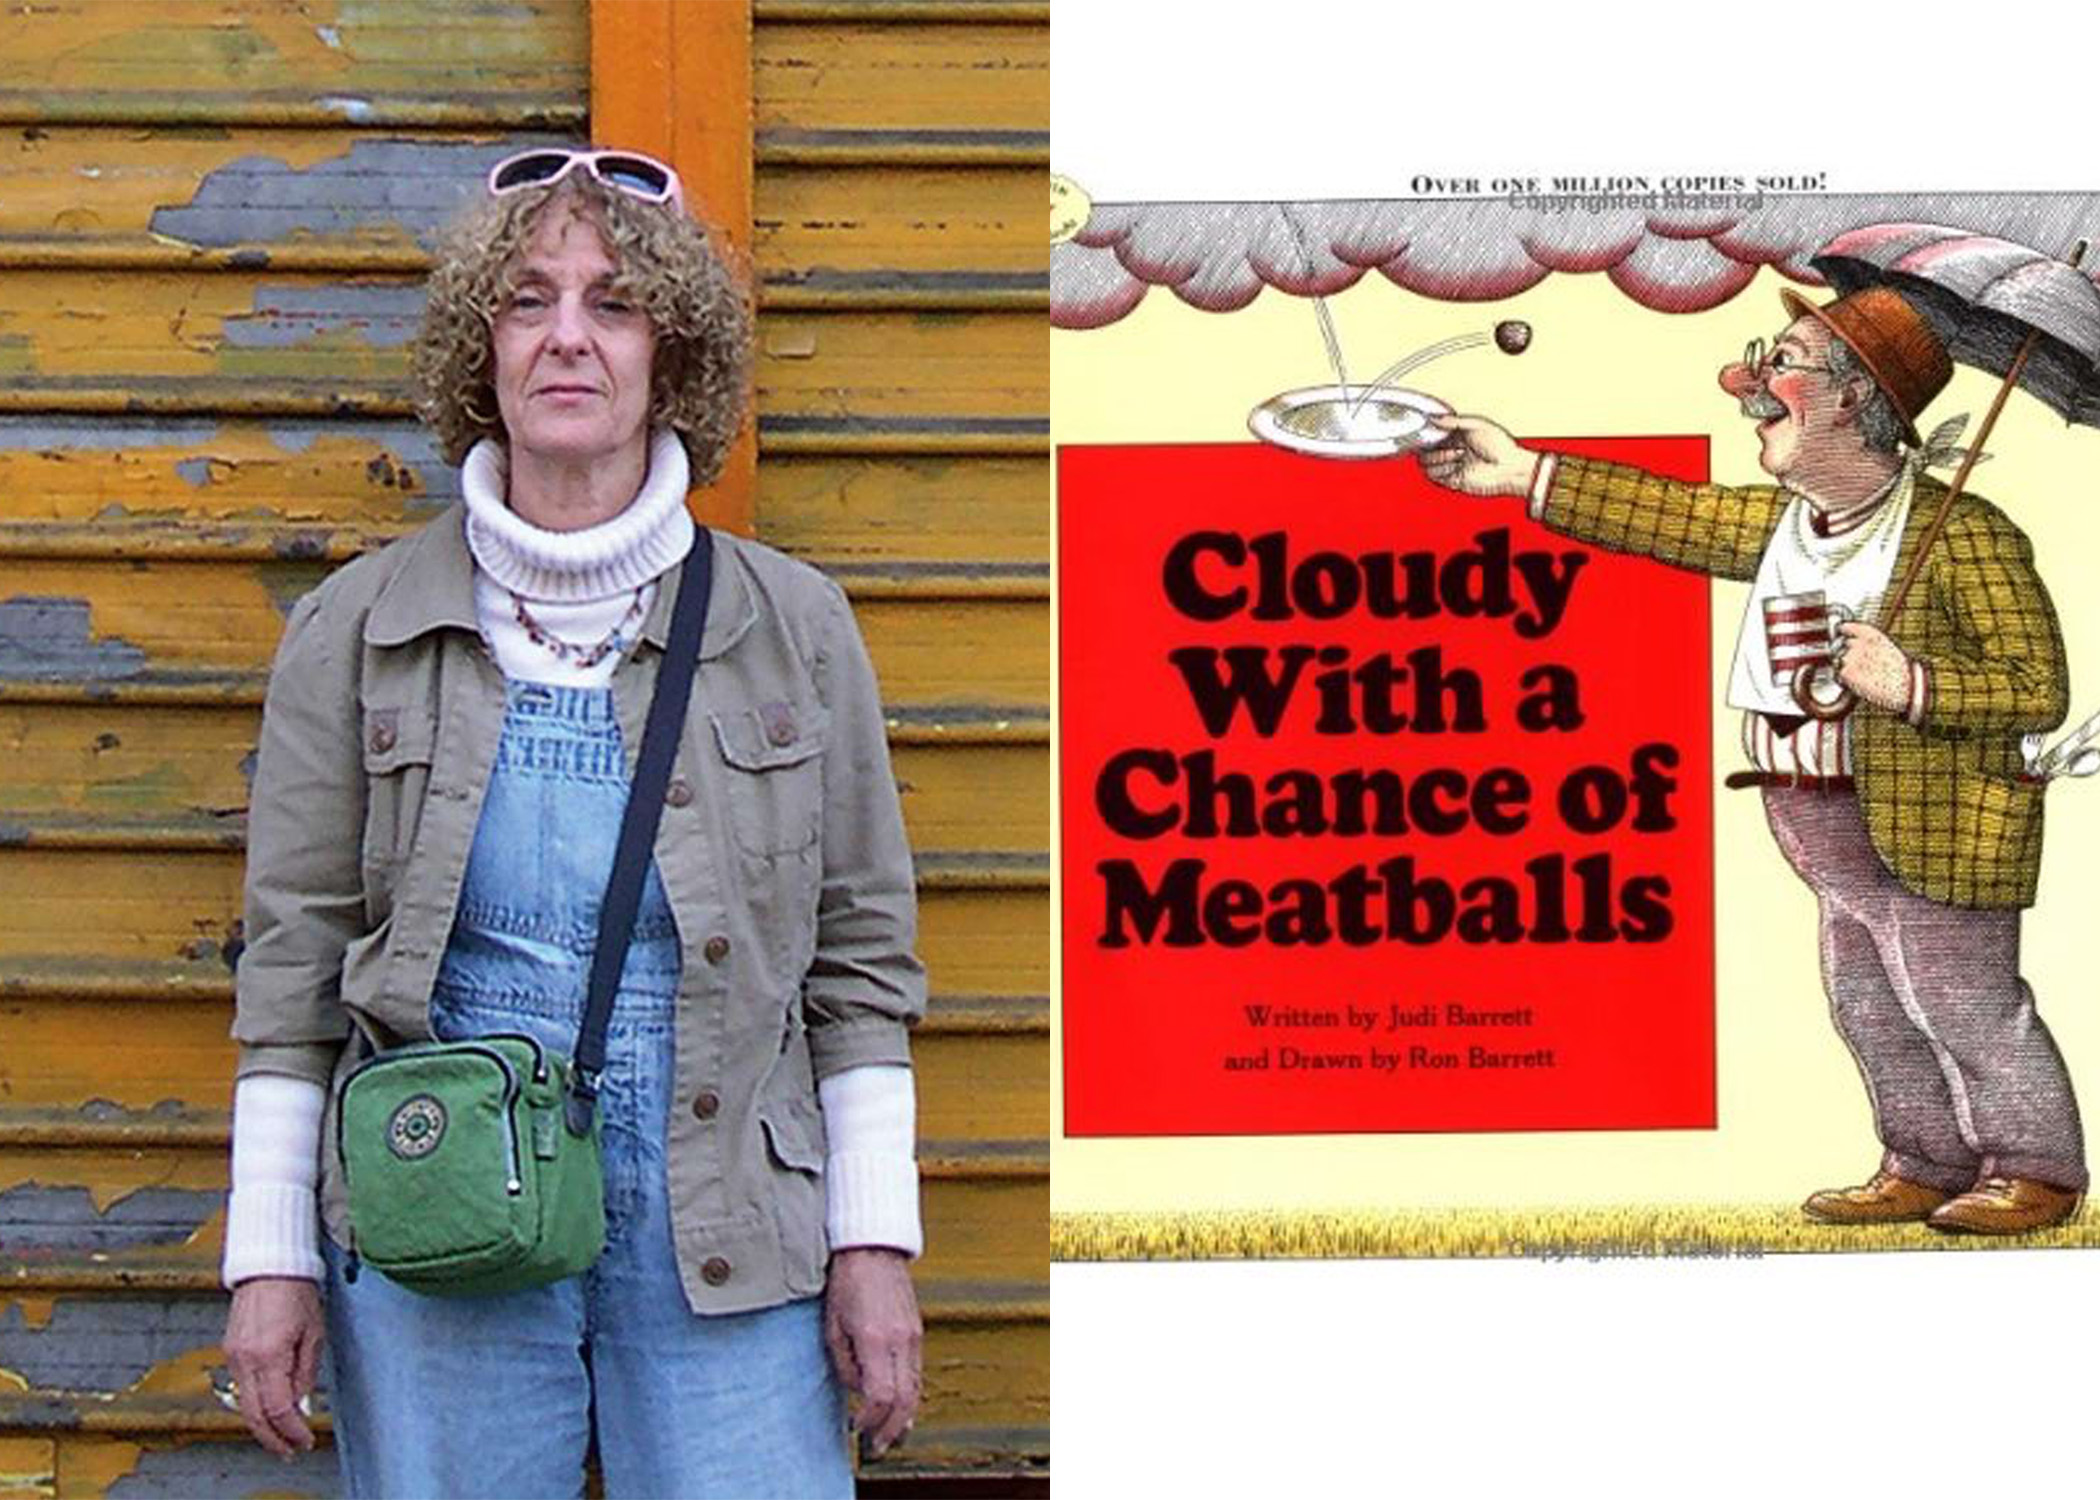 'Cloudy With A Chance of Meatballs' signed by Judi Barrett